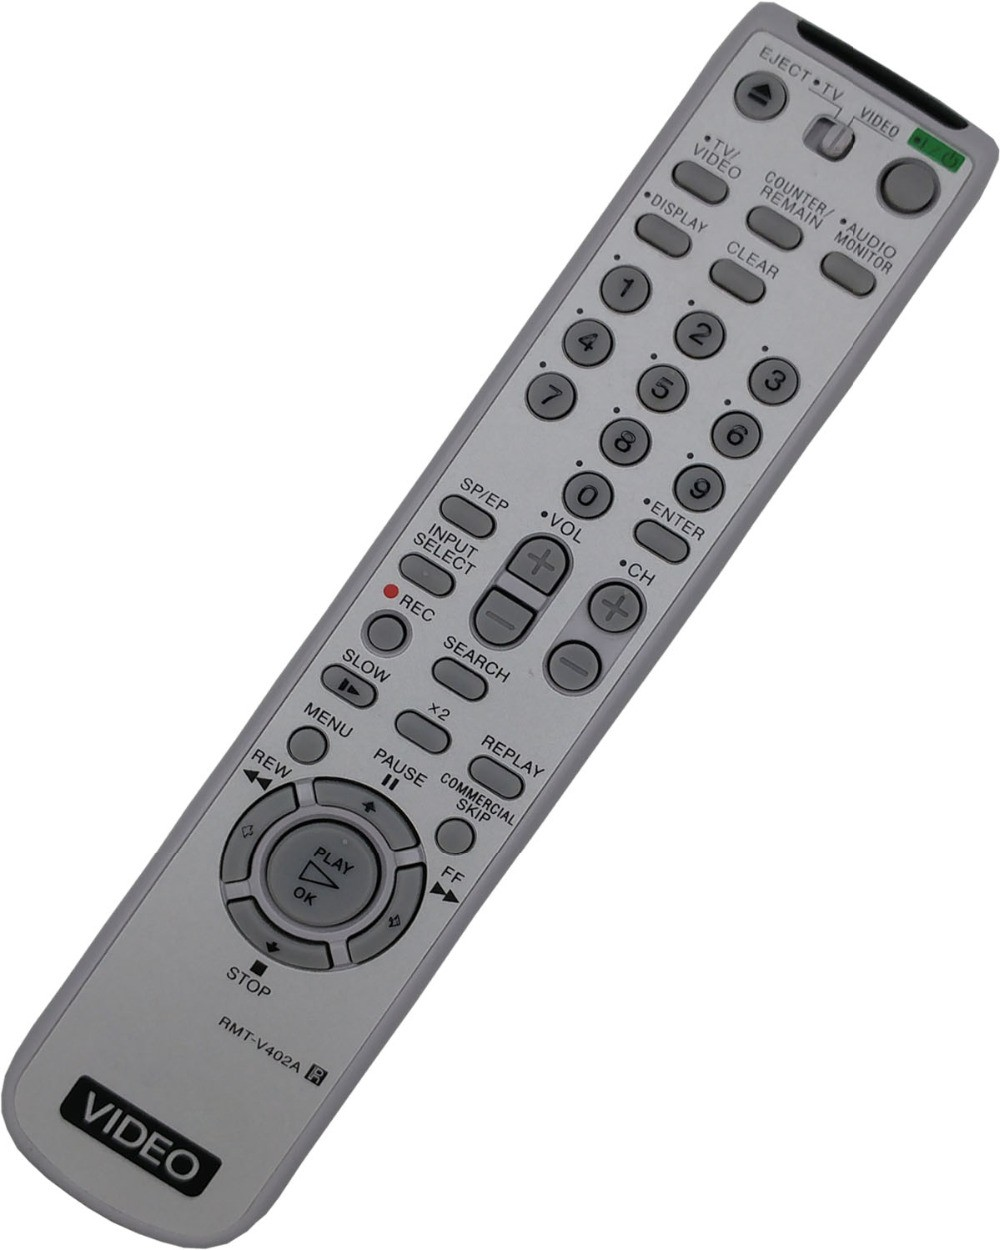 TV-031--Used Authentic Sony RMT-V402B Refurbished Remote Control Tested Working-image